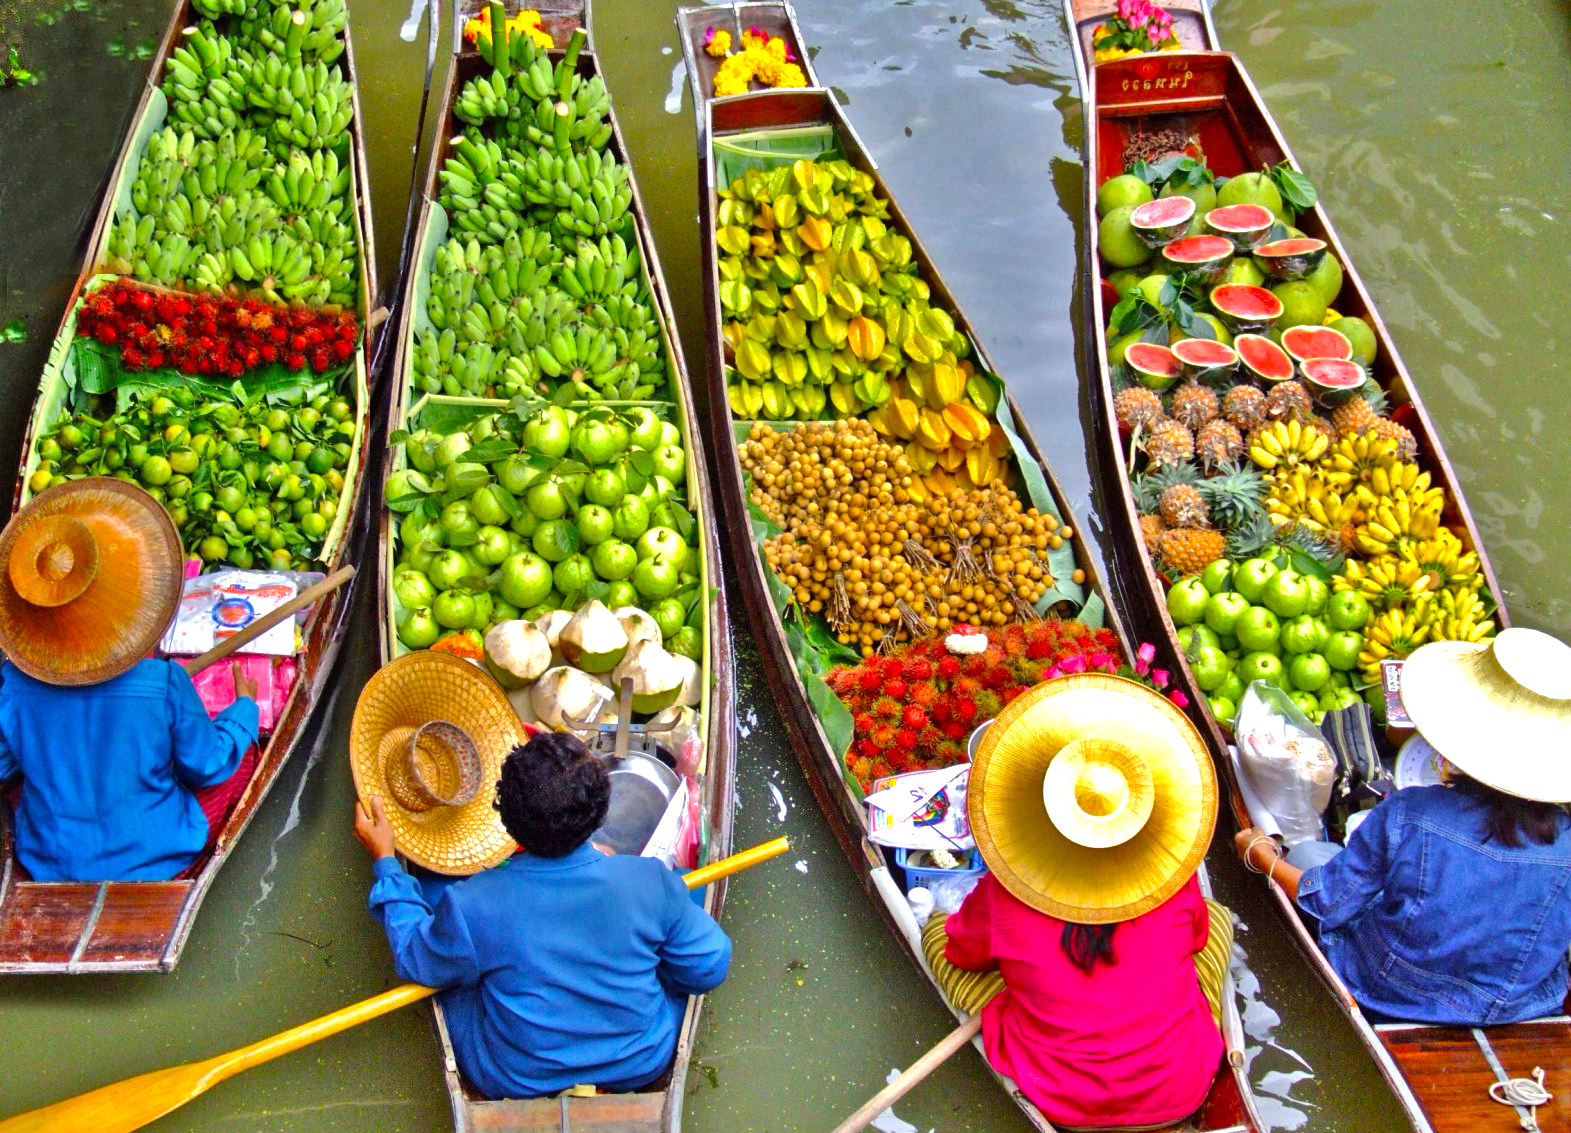 Taste of Thailand Food Tour with floating market boats with brightly coloured fruit and vegetables